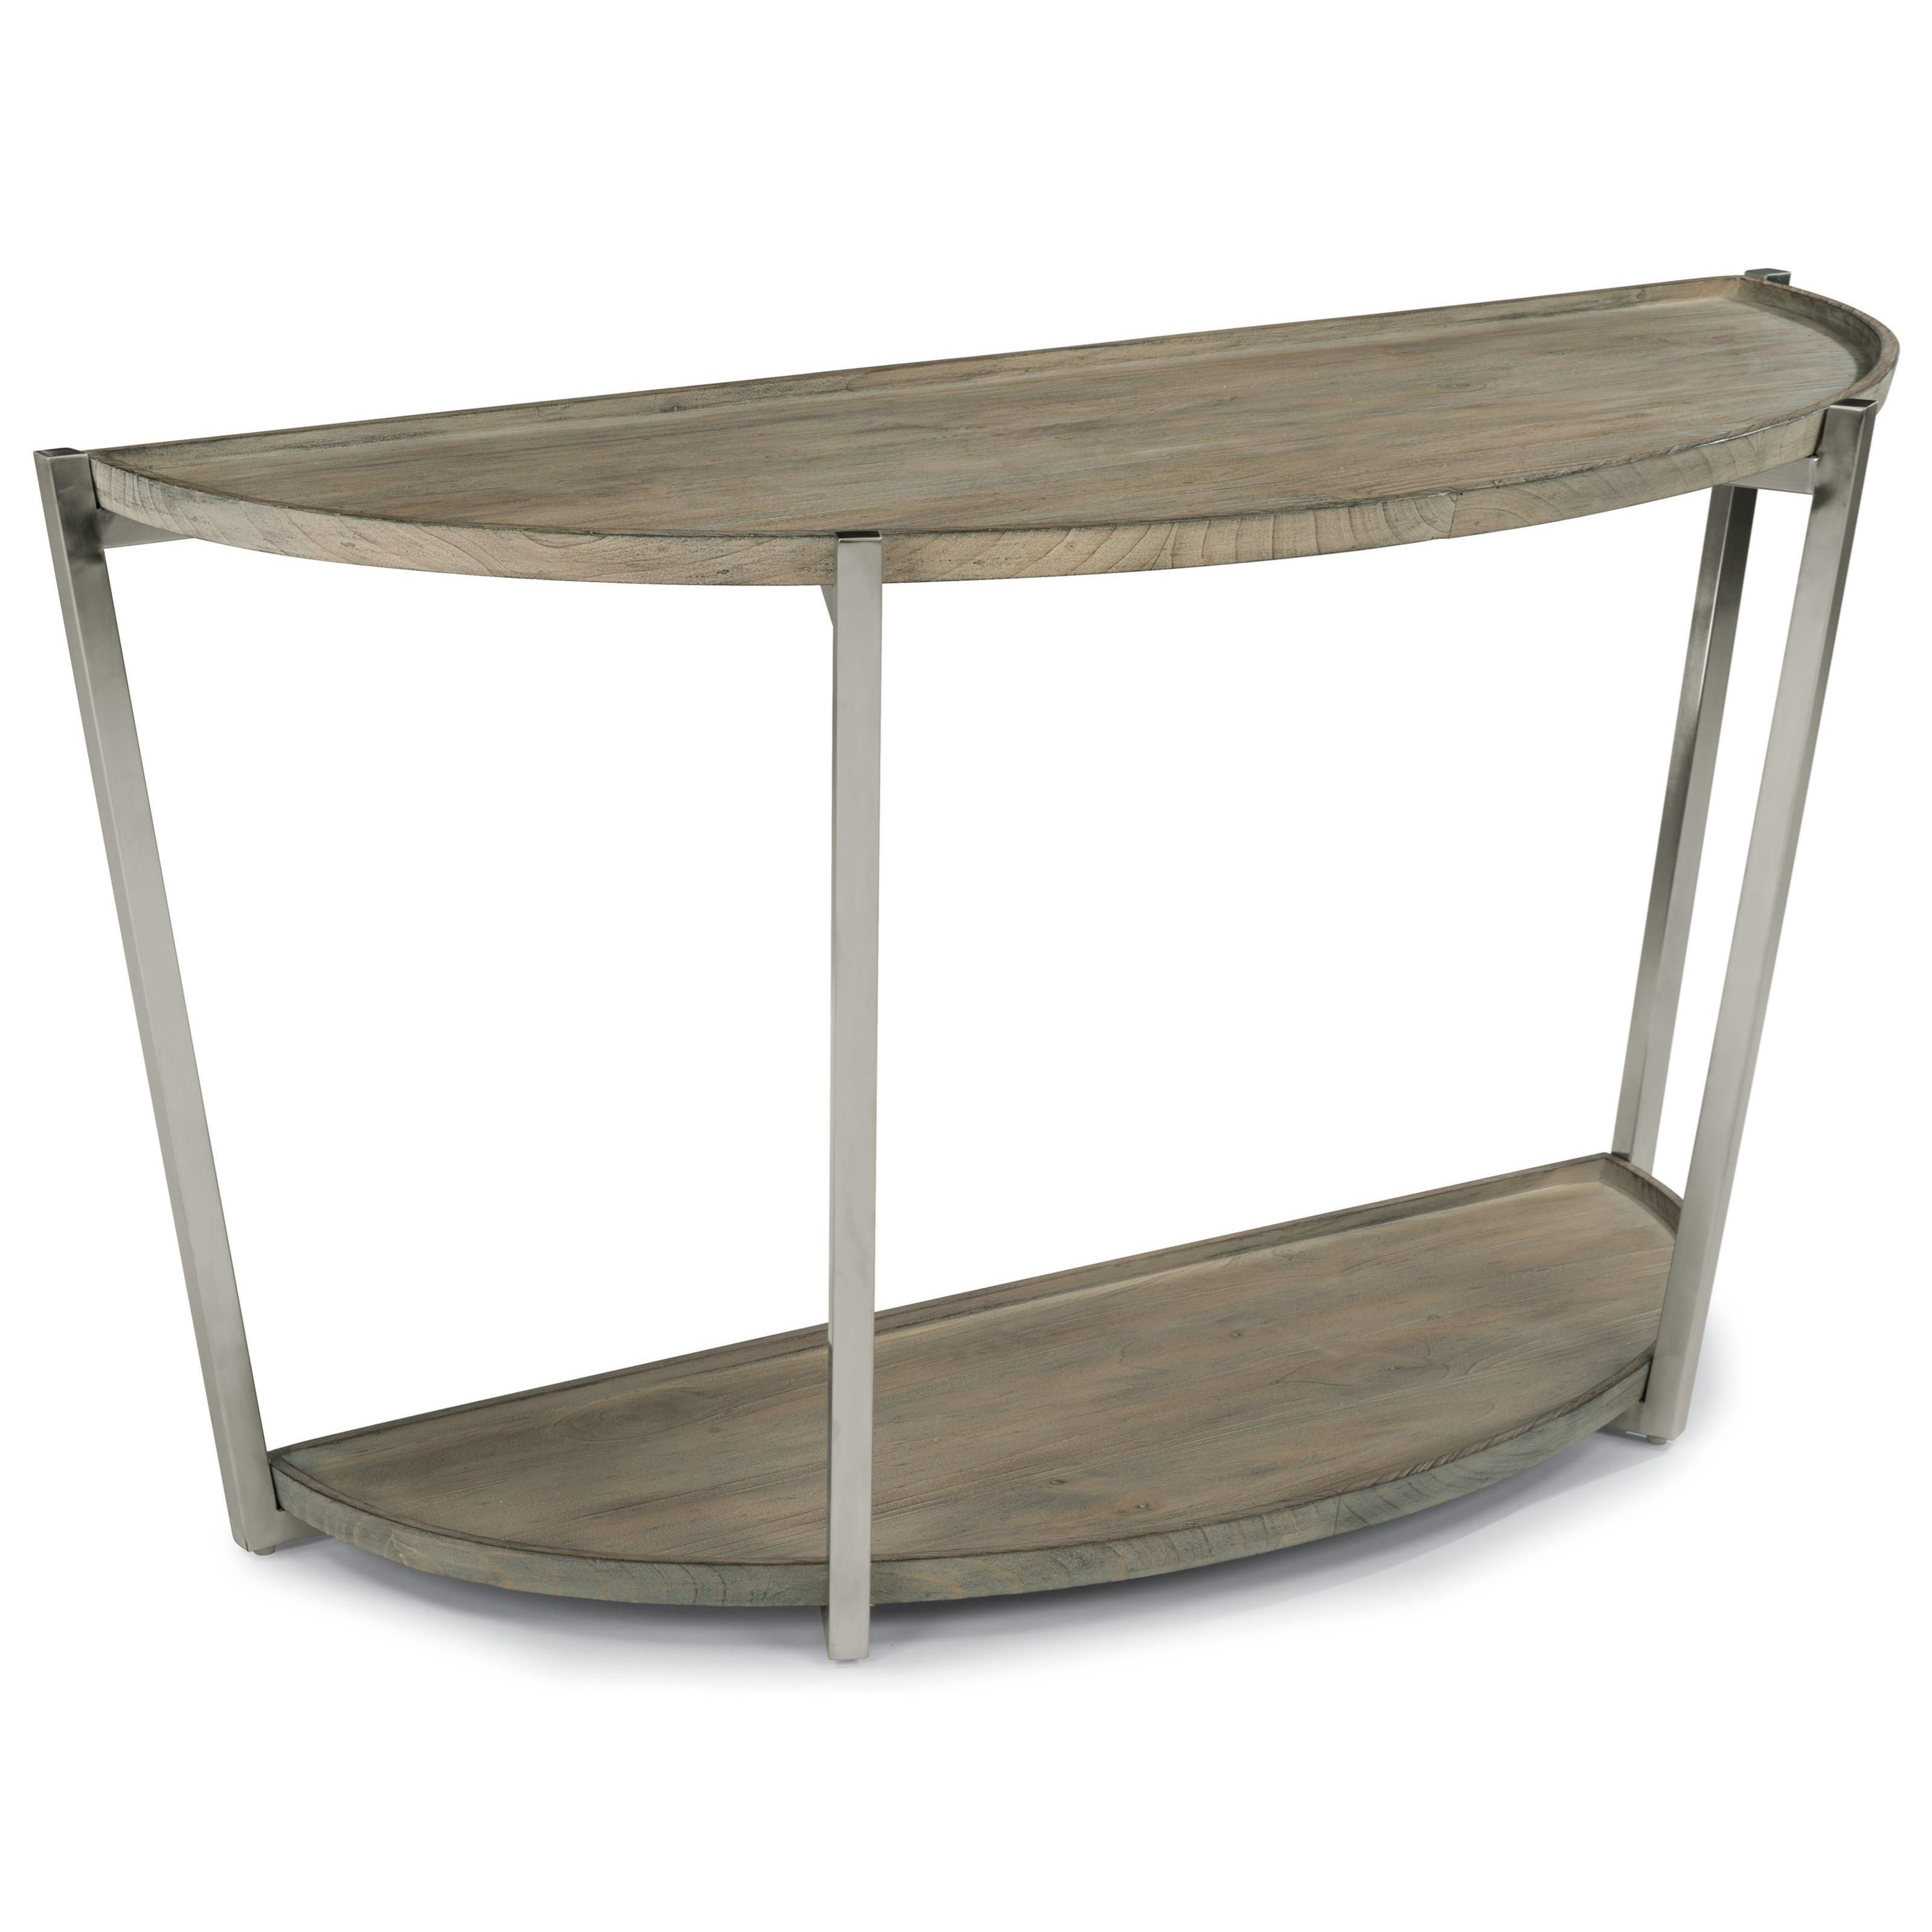 Platform Contemporary Sofa Table With Stainless Steel Base By Flexsteel Wynwood Collection At Olinde S Furniture